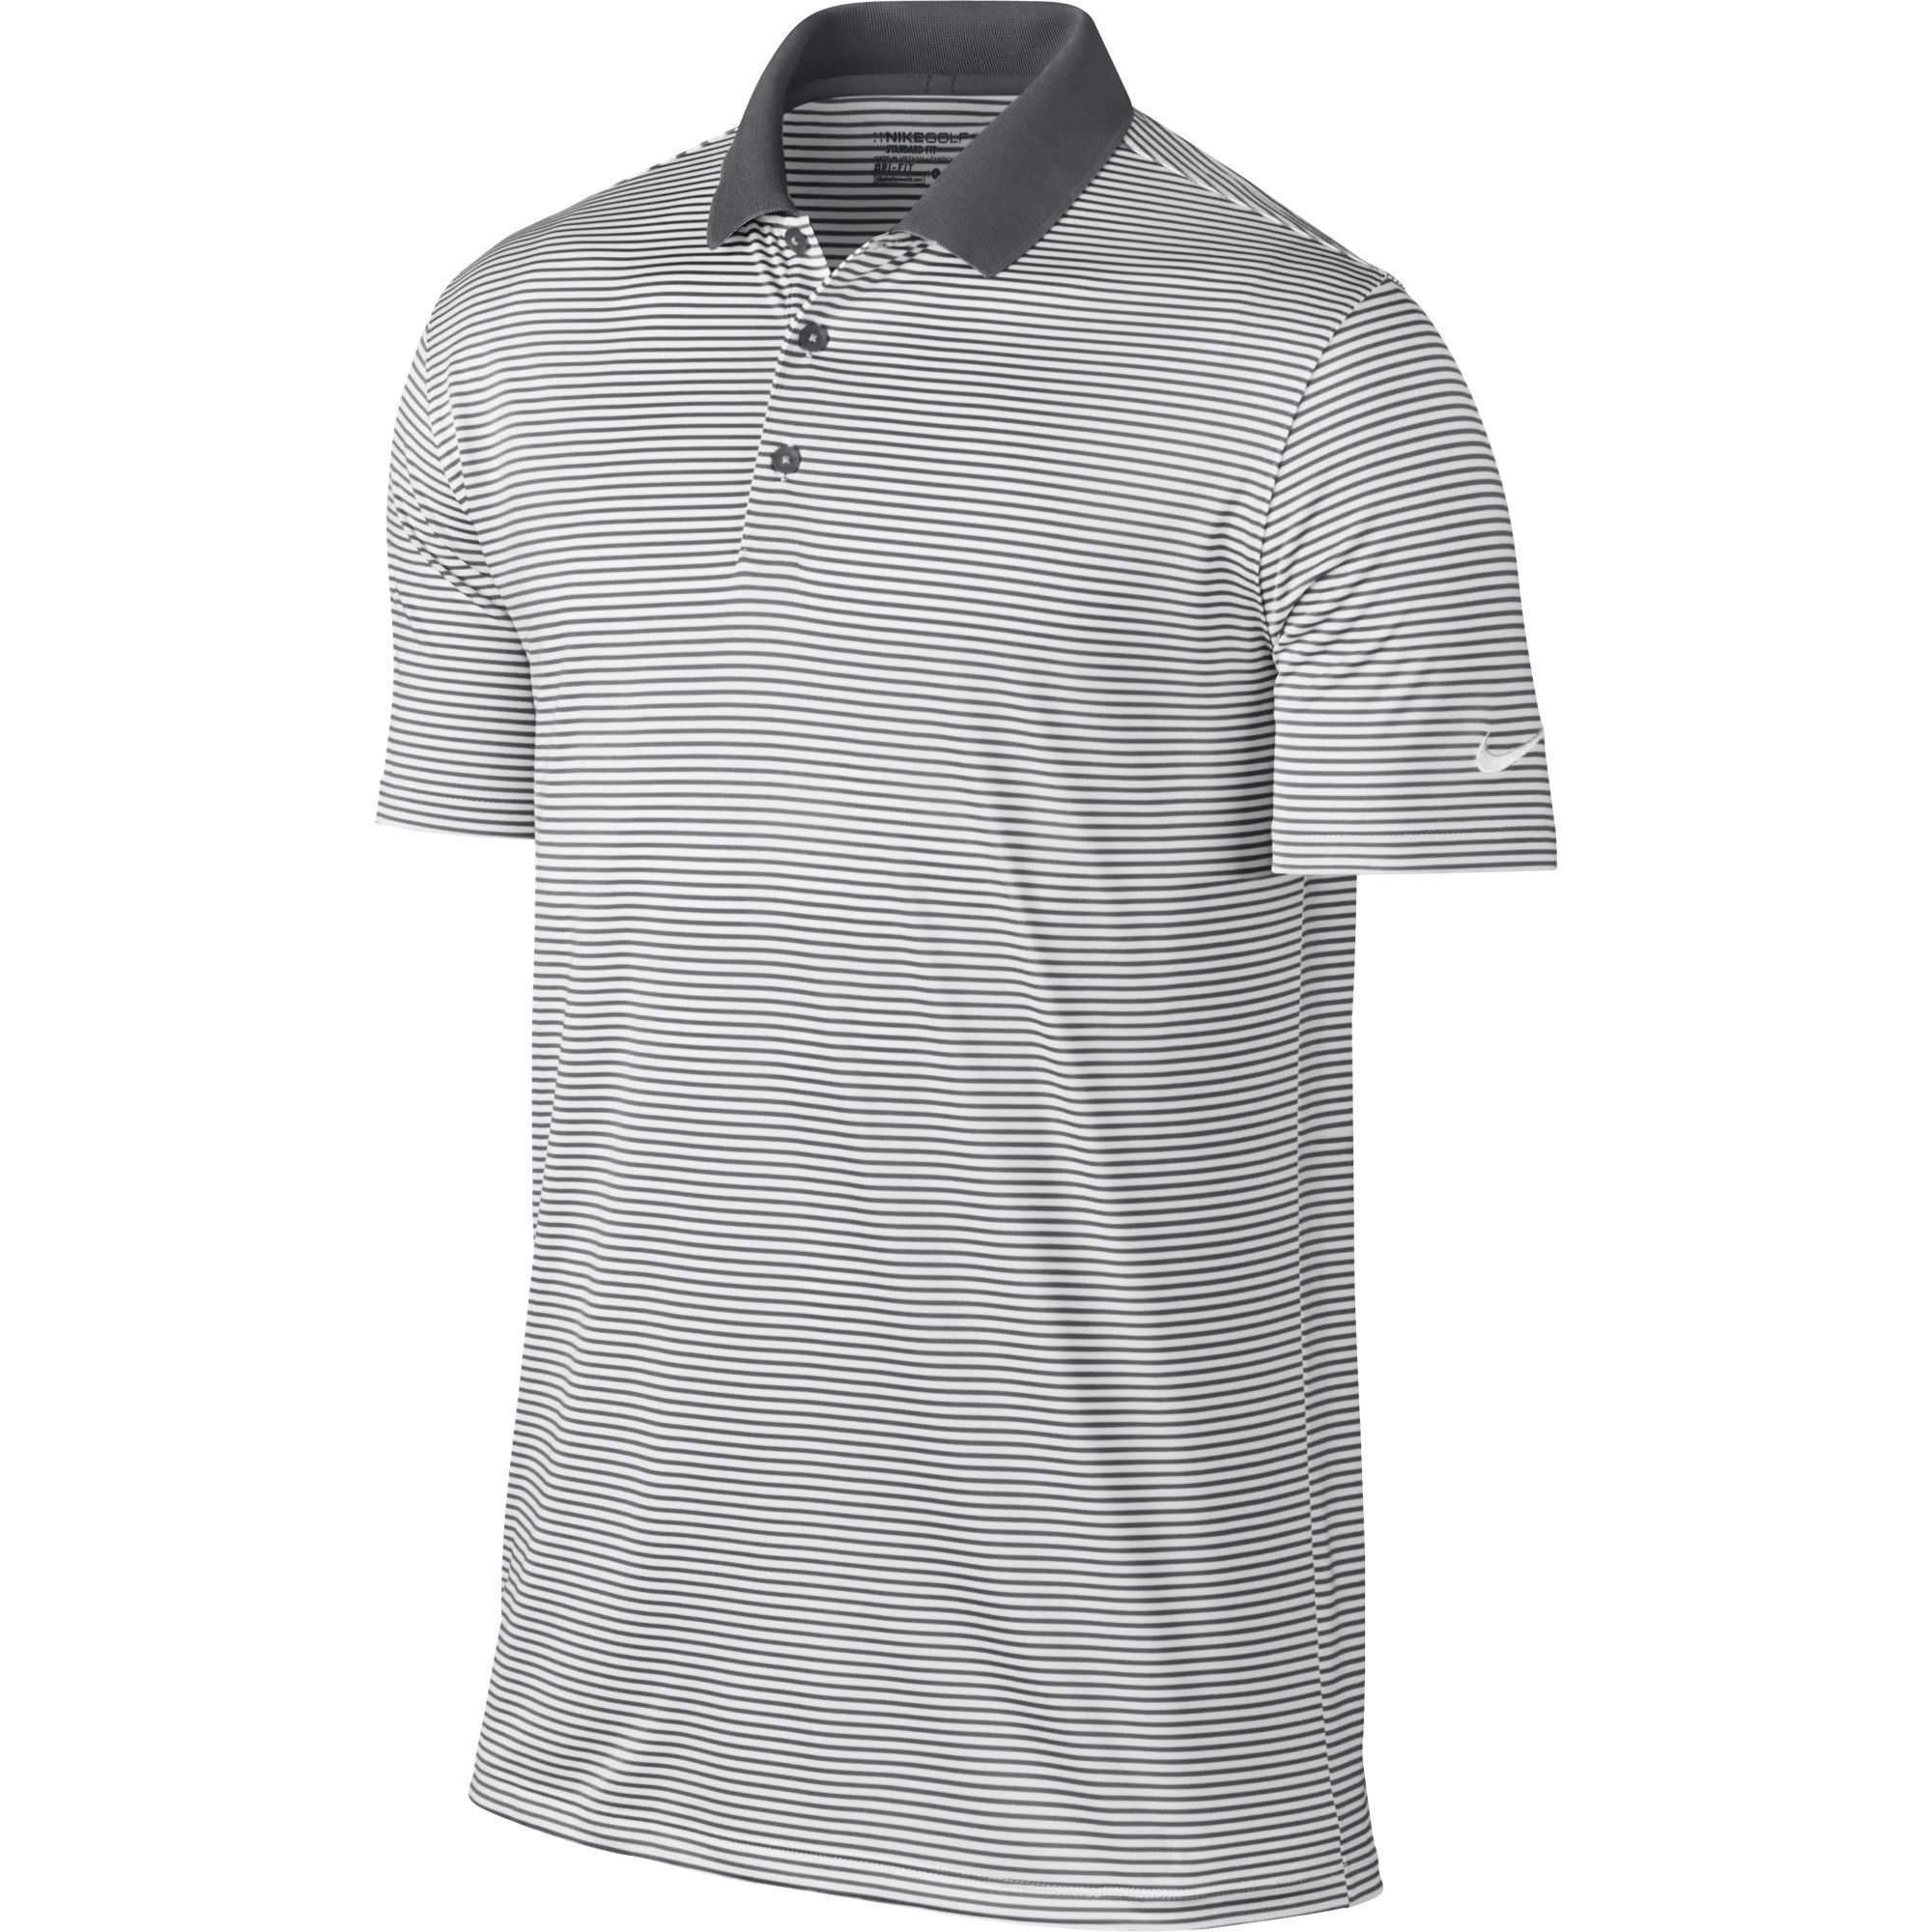 451b5a78d2 Nike Men's Dry Victory Golf Polo Stripe in 2019   Products   Mens ...